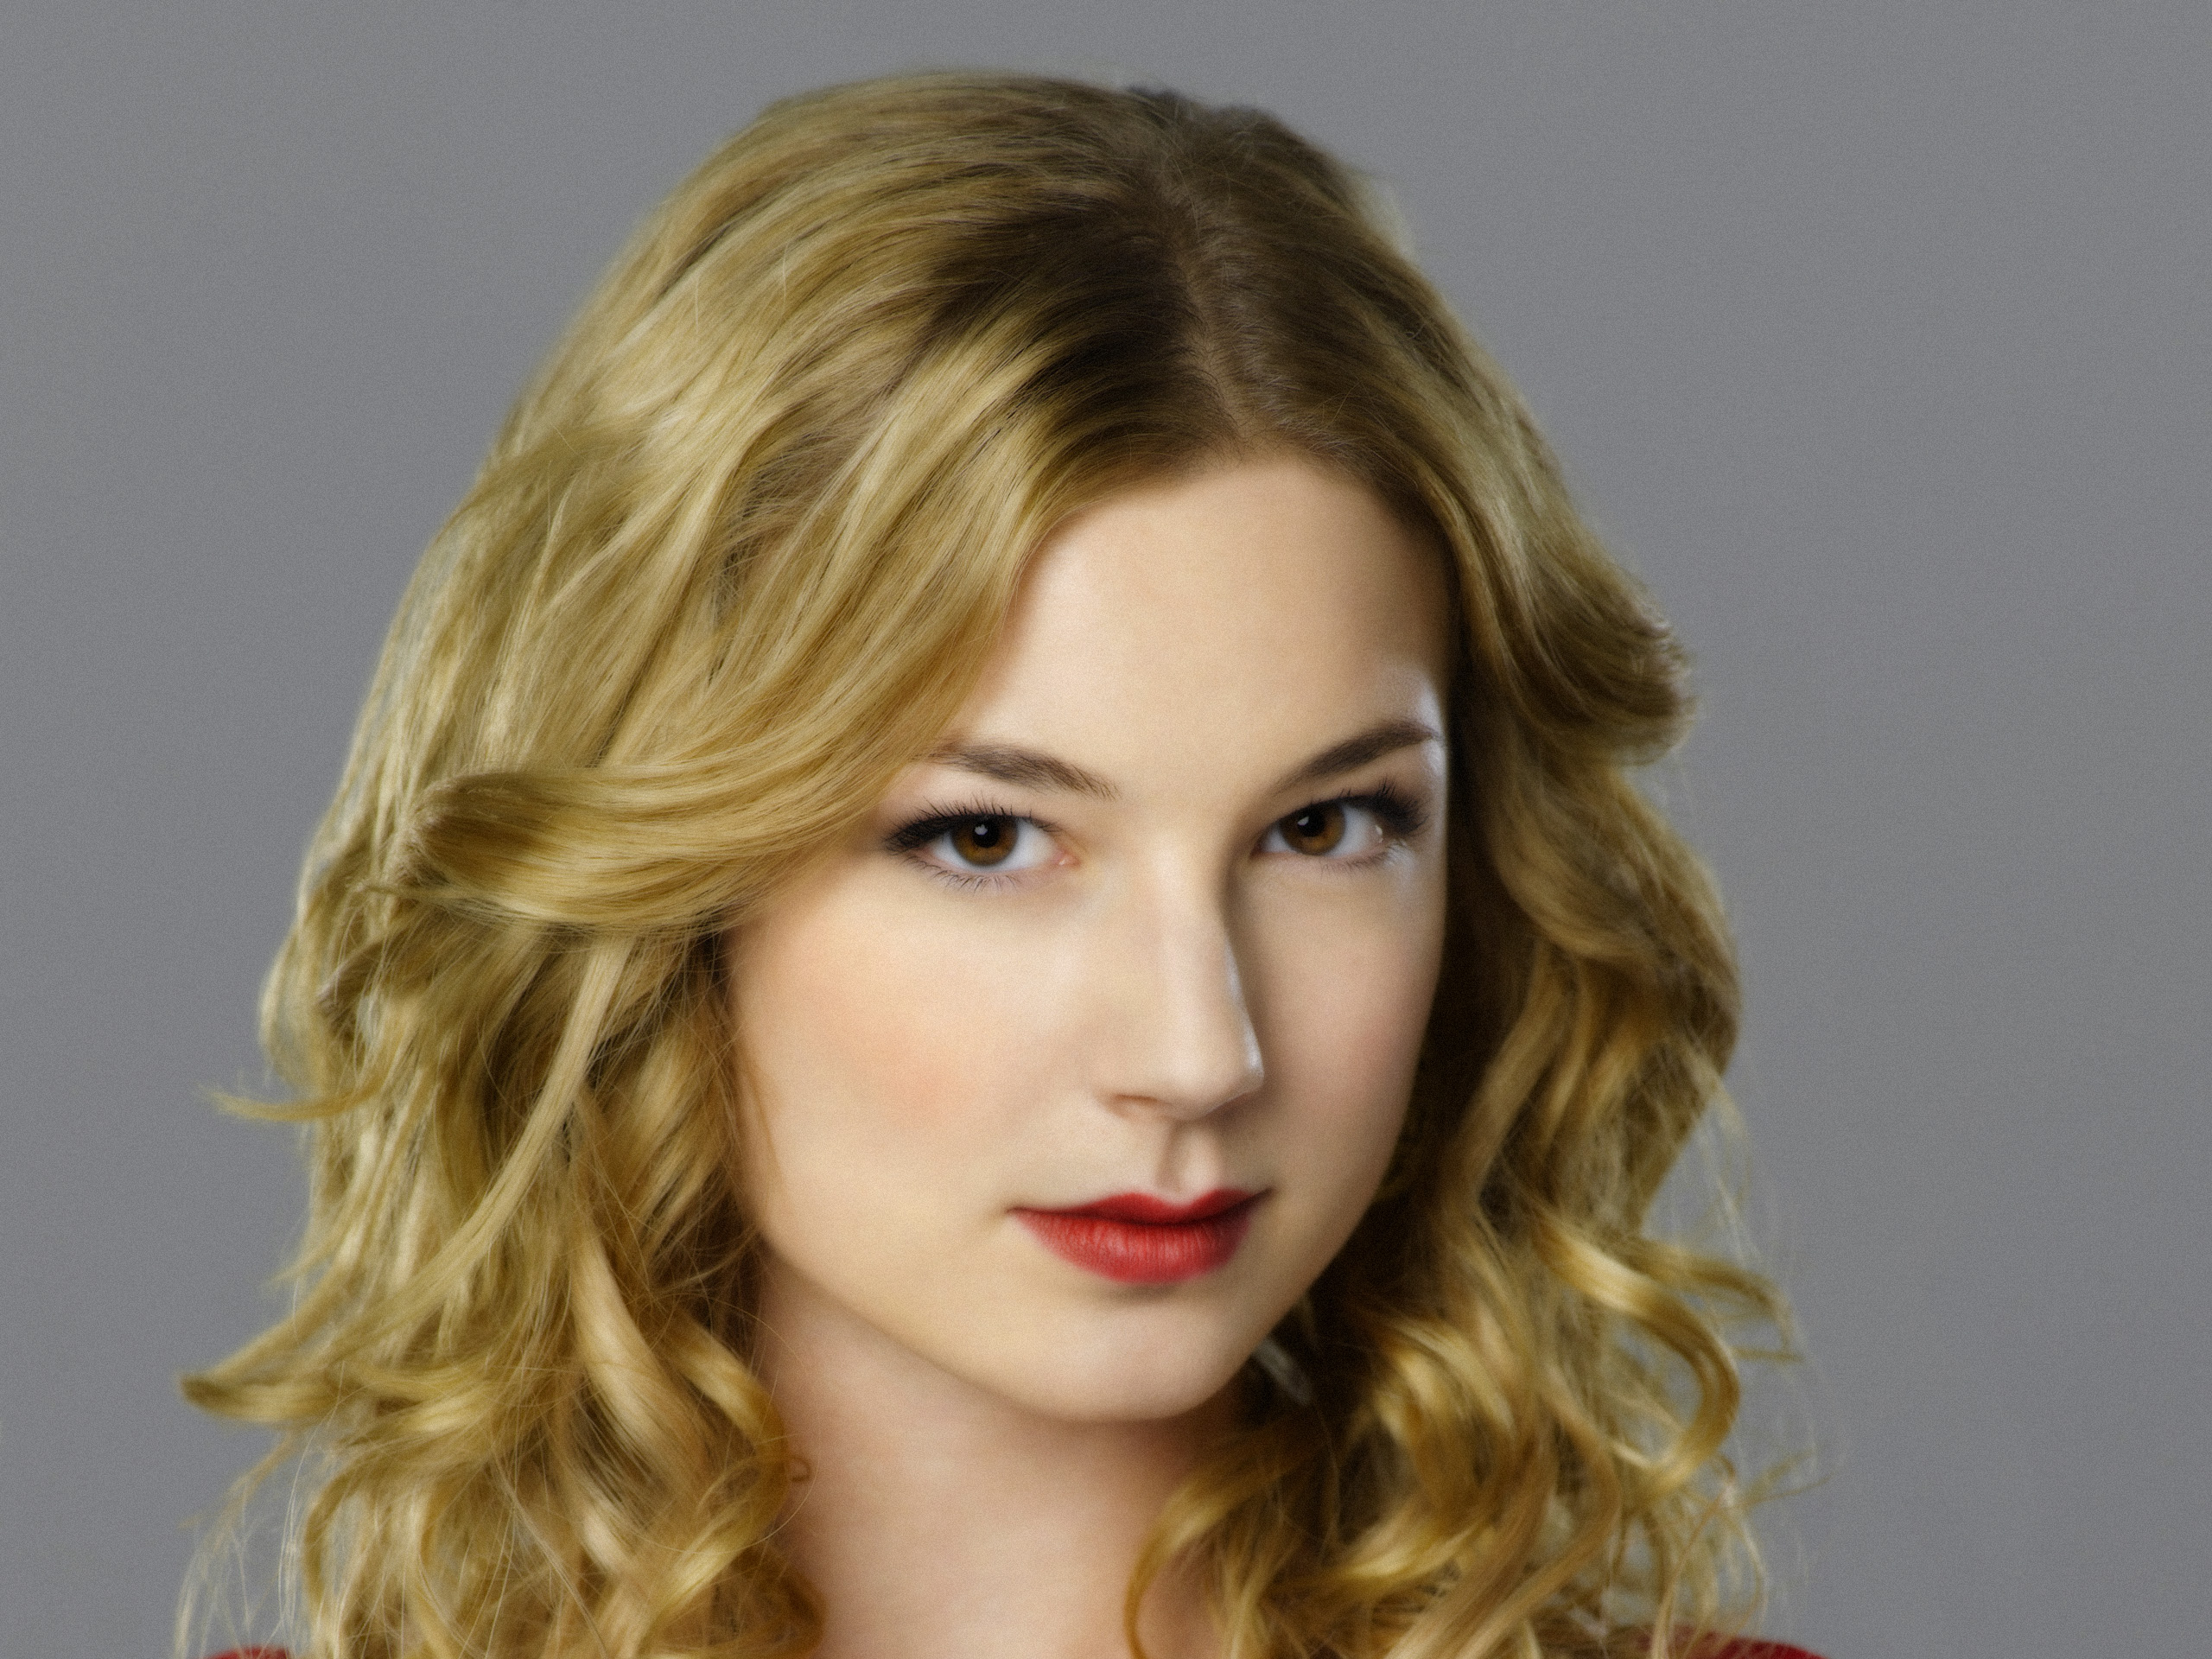 Emily VanCamp Full HD Wallpaper And Background